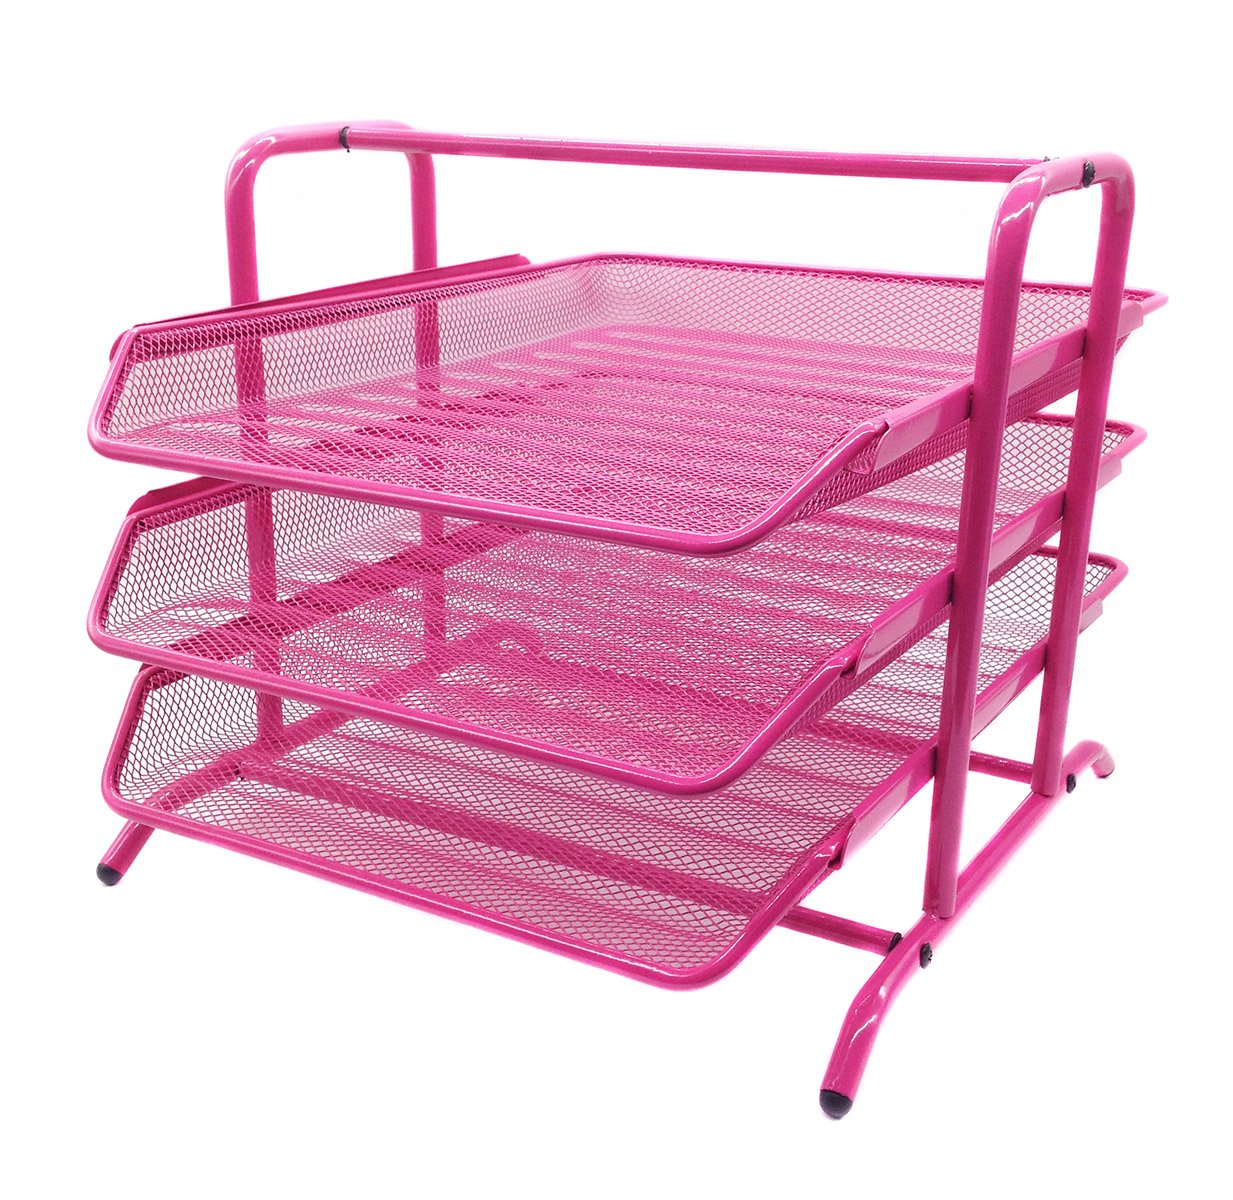 EasyPAG 3 Tier Mesh Desk Organizer Tray File Holder,Pink